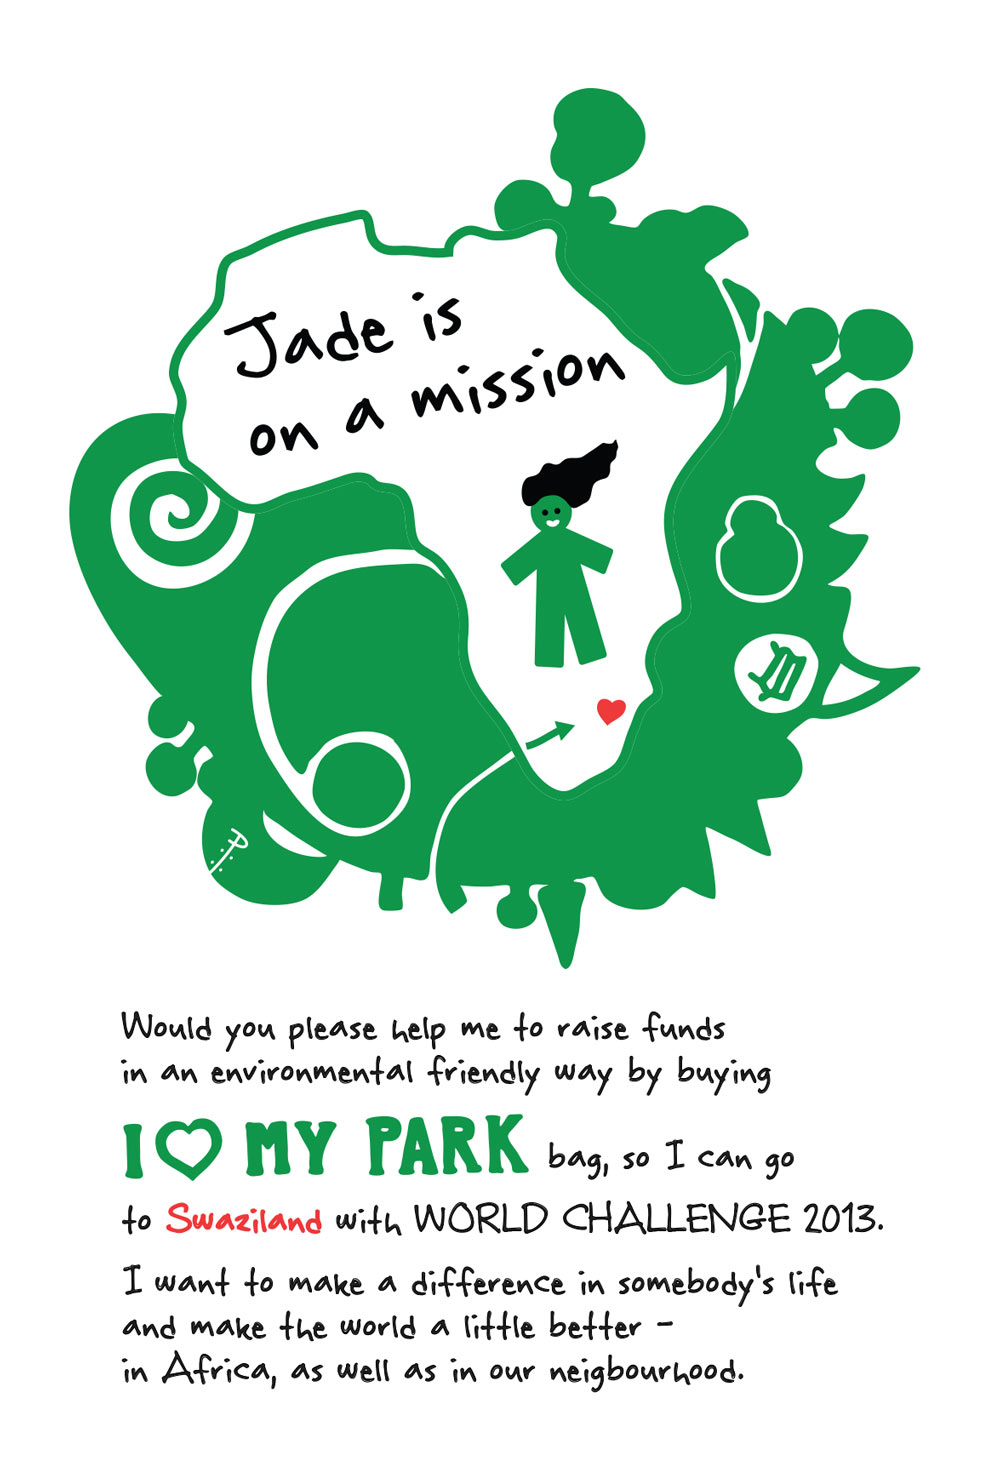 jade-is-on-a-mission-poster.jpg